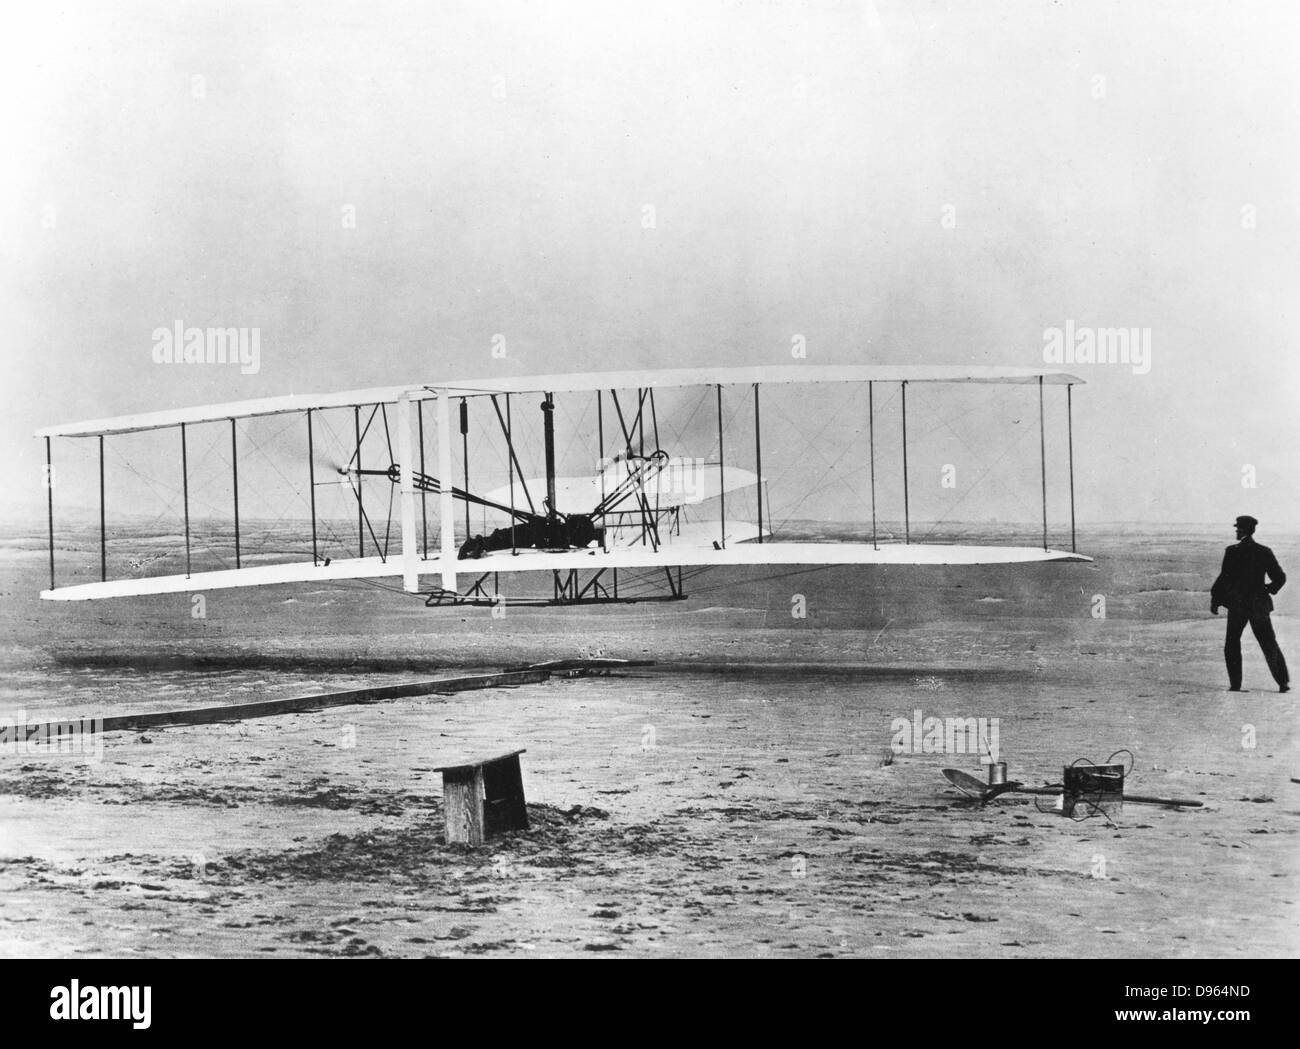 orville and wilbur wright invented the first powered